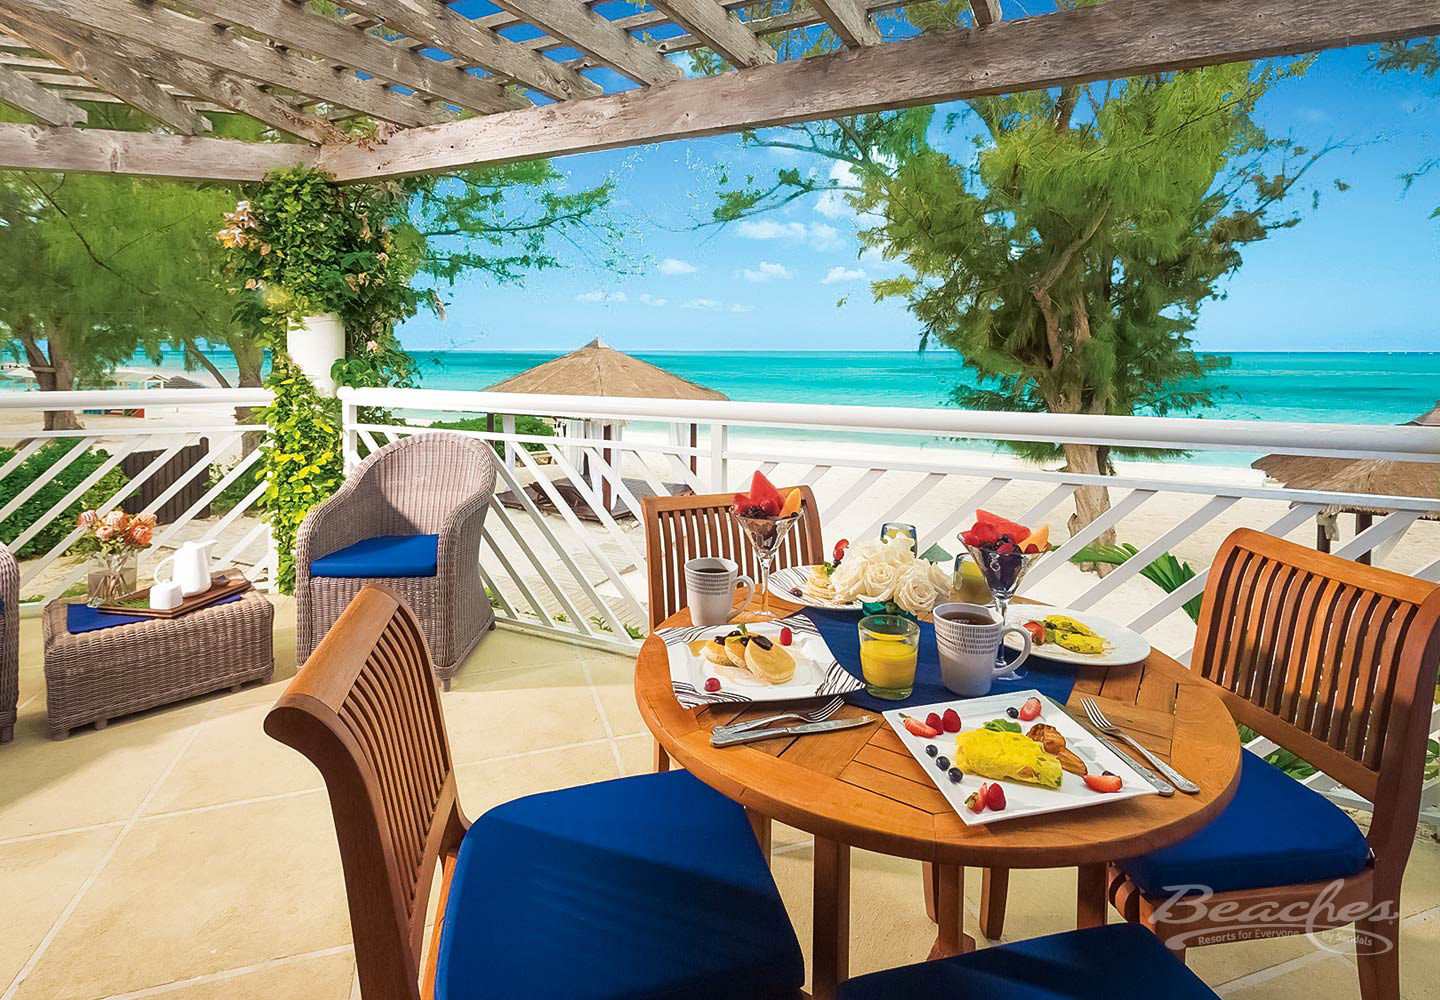 Travel Agency All-Inclusive Resort Beaches Turks and Caicos 102